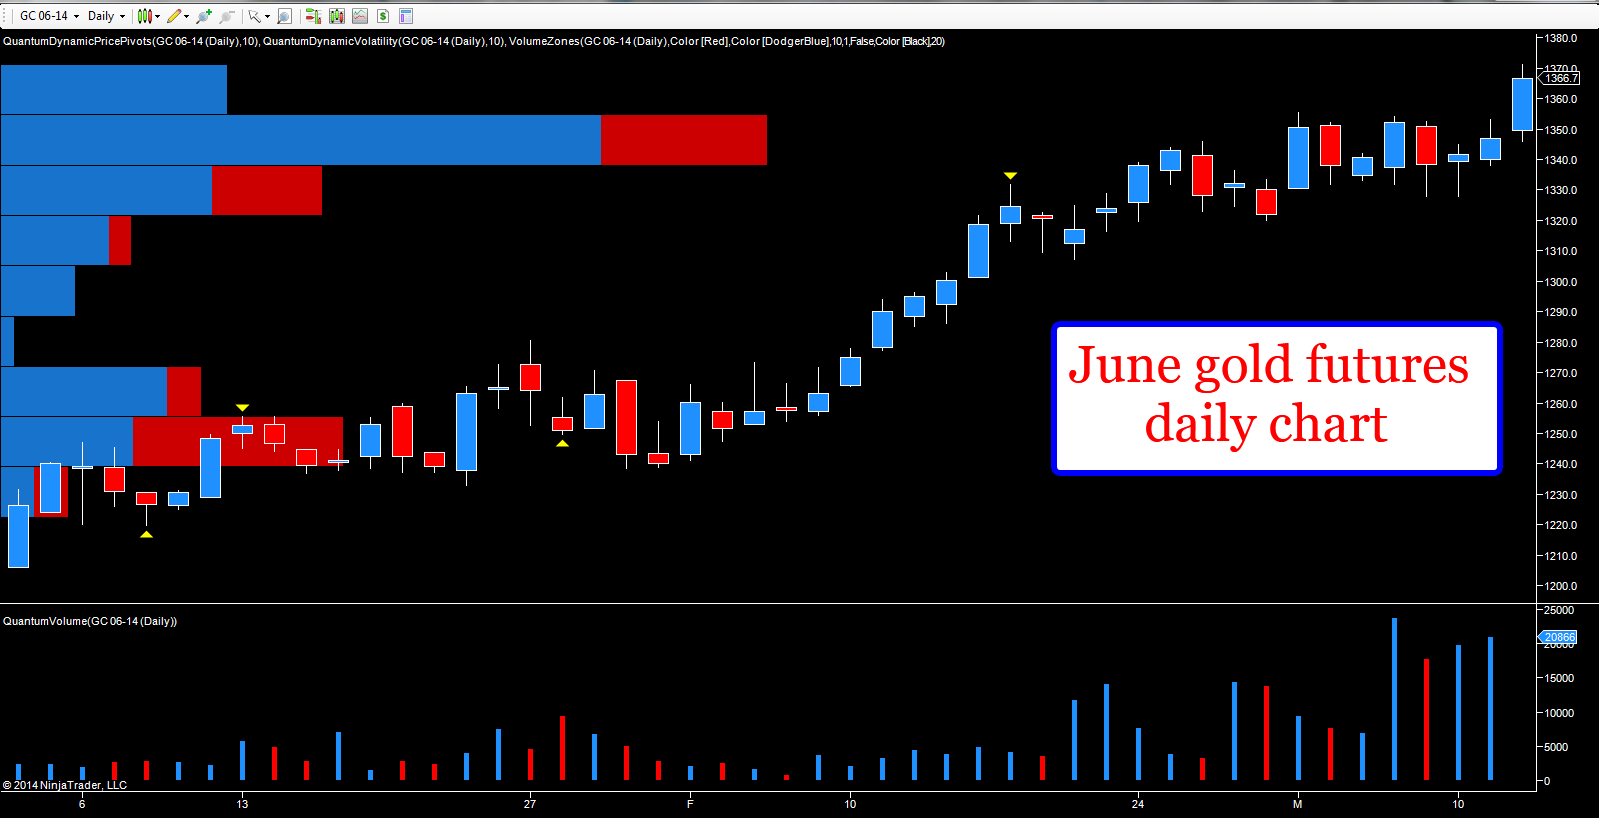 Daily gold chart - June futures